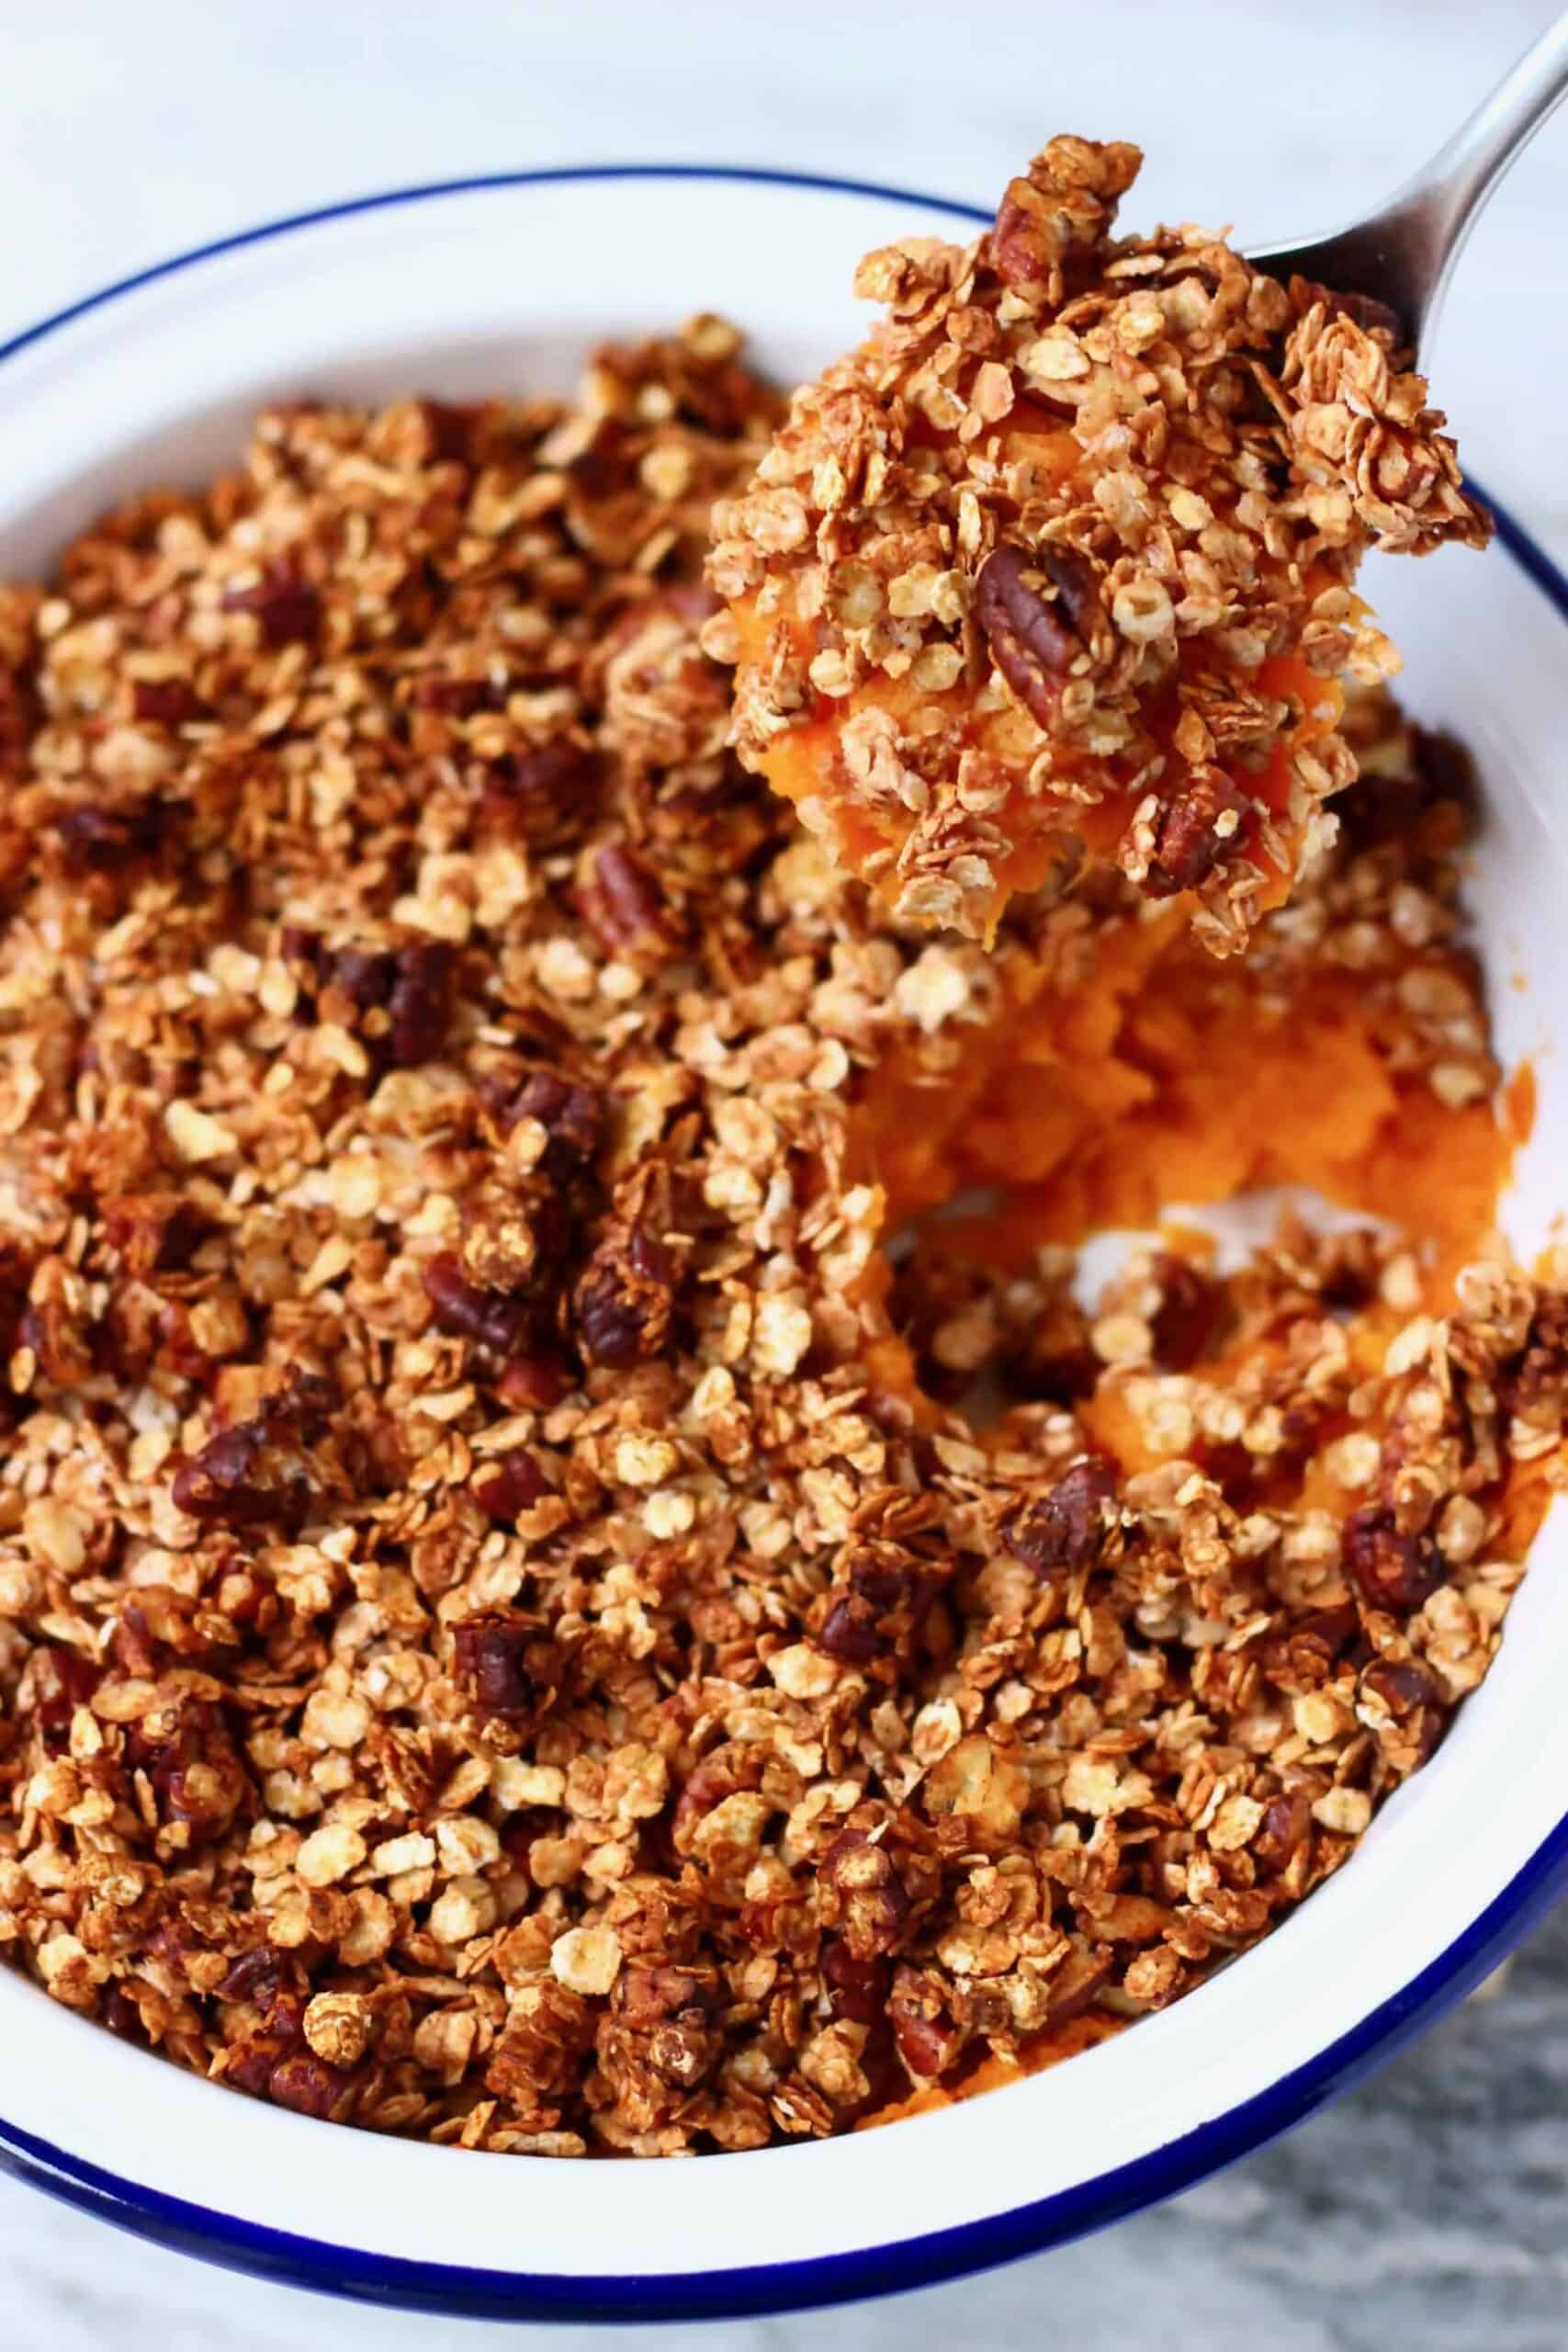 Vegan sweet potato casserole in a pie dish with a spoon lifting up a mouthful